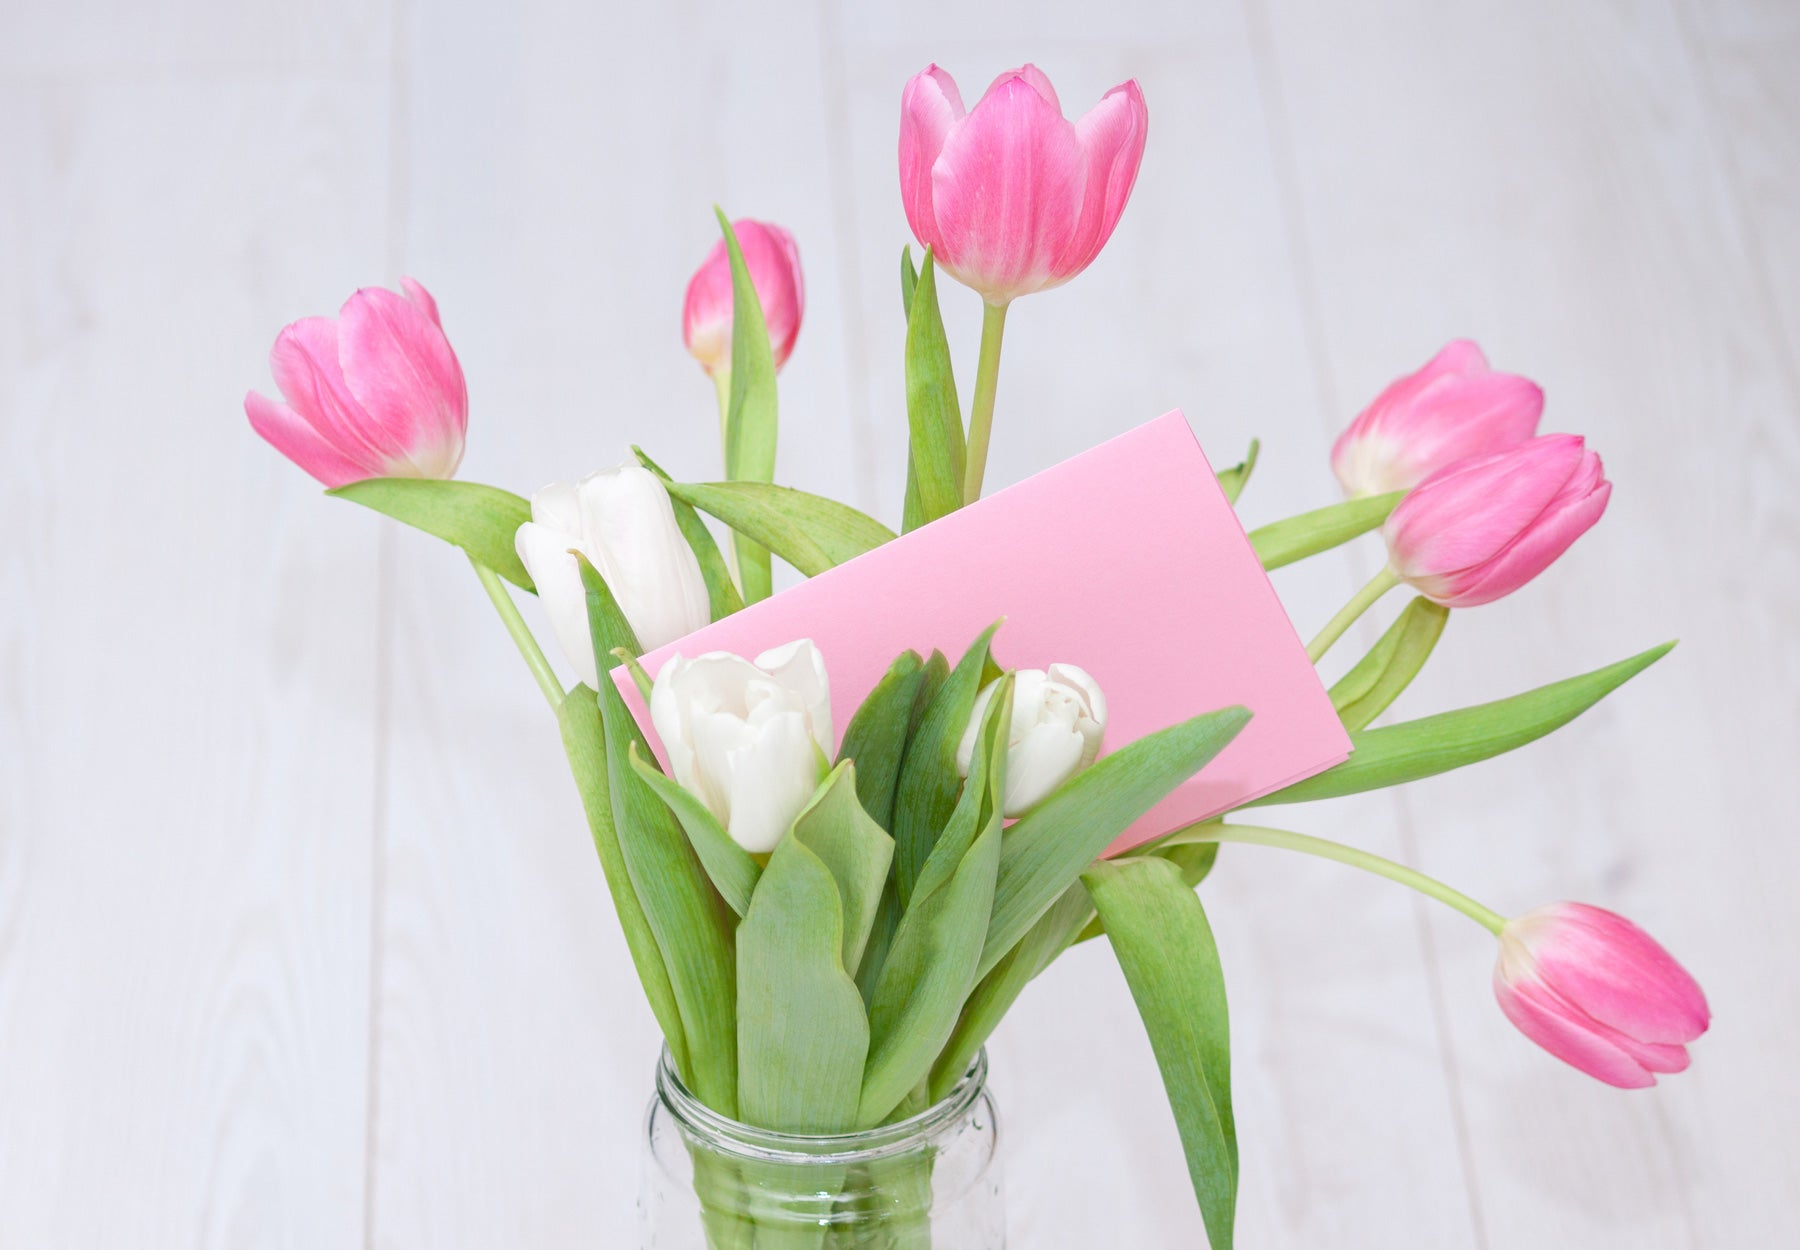 6 ways to pamper Mom this Mother's Day